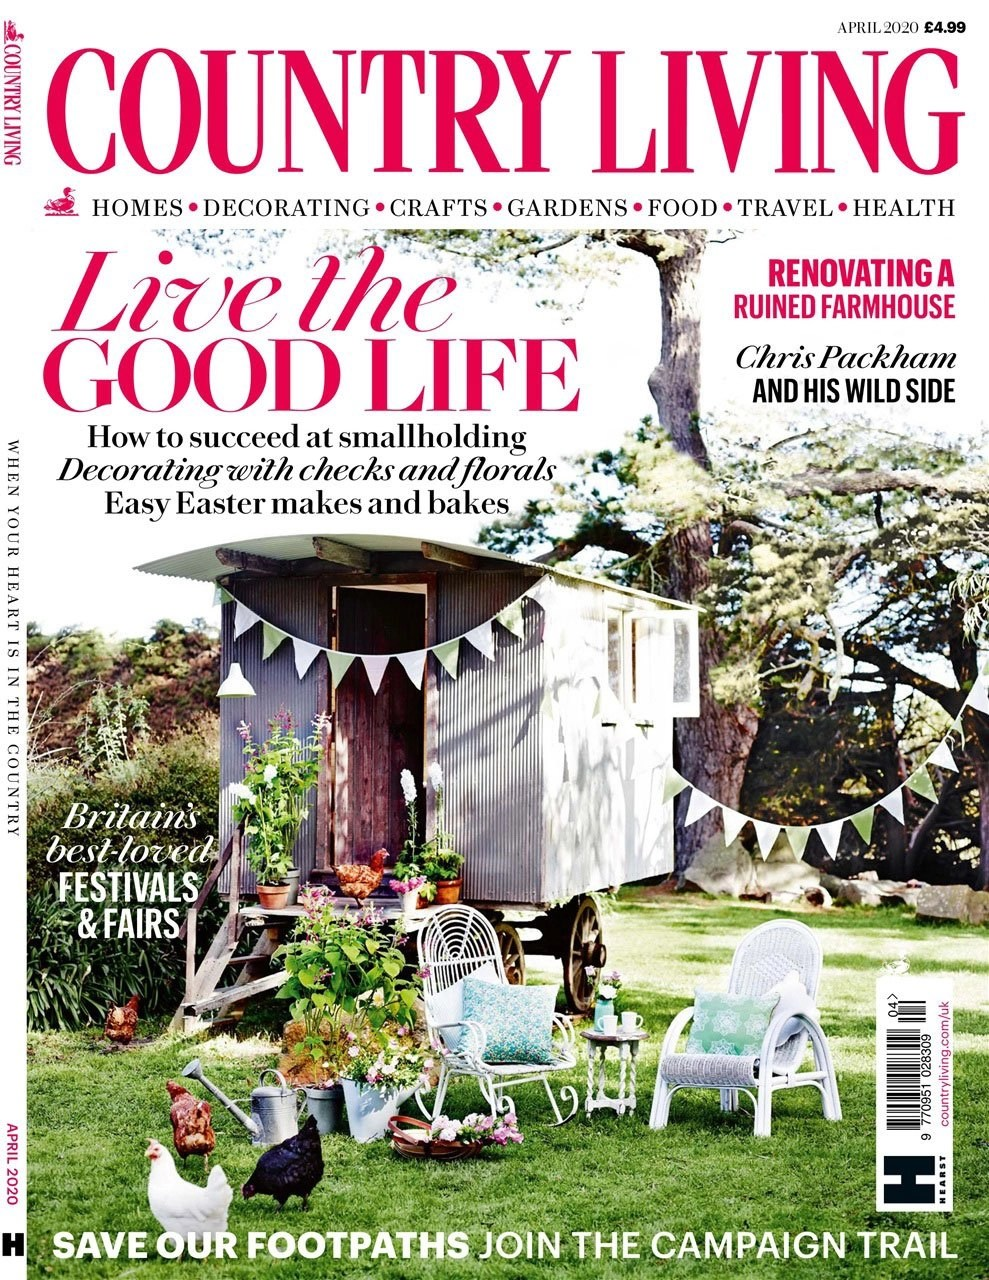 Land of Slope and Glory article featuring Ann-Marie Powell Garden design